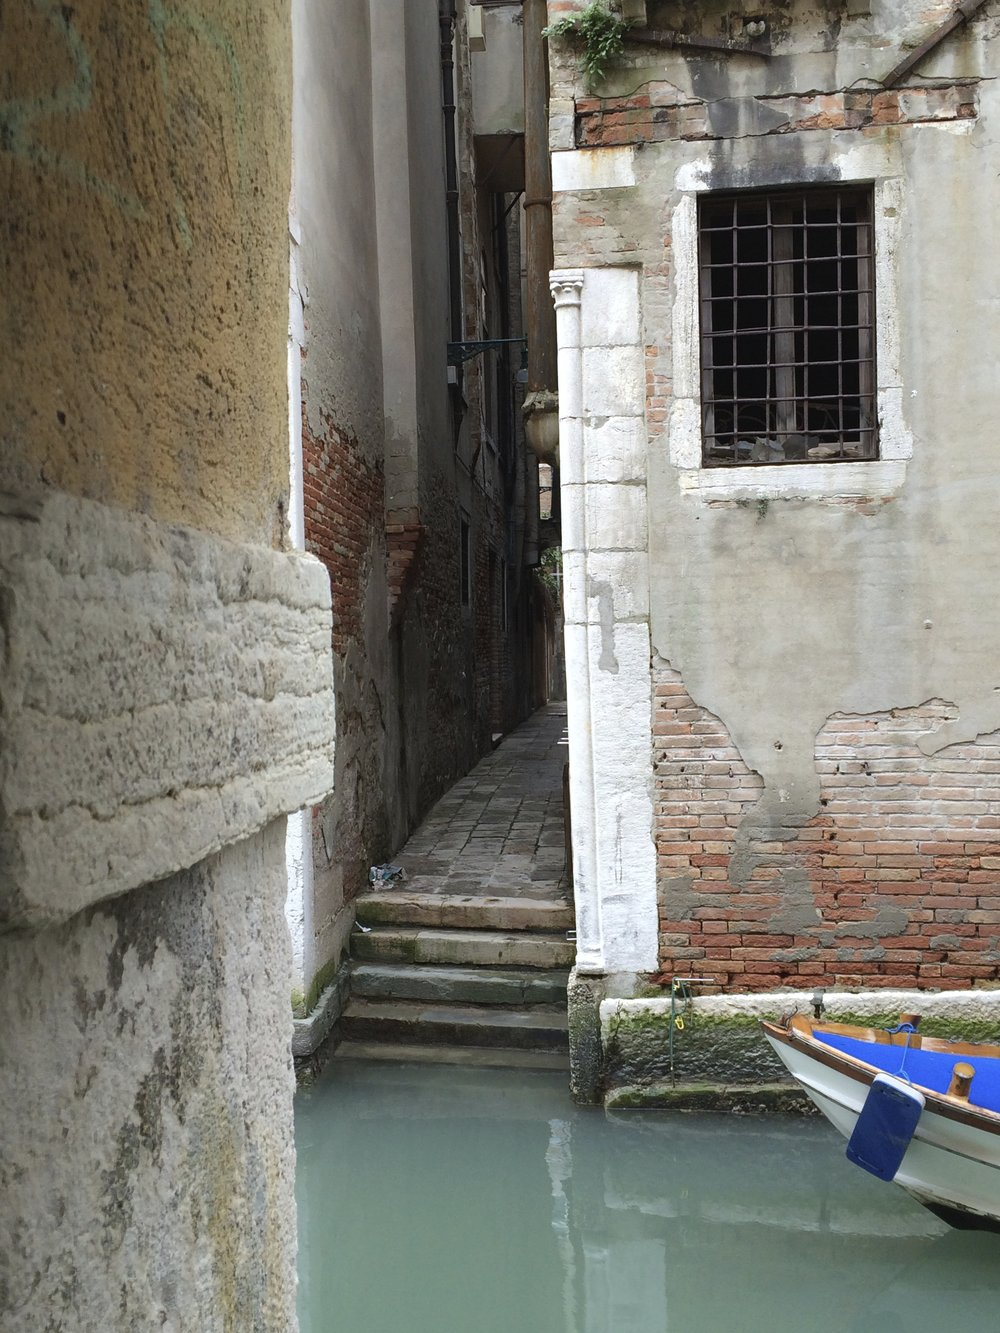 Venice. Photo by Lucy